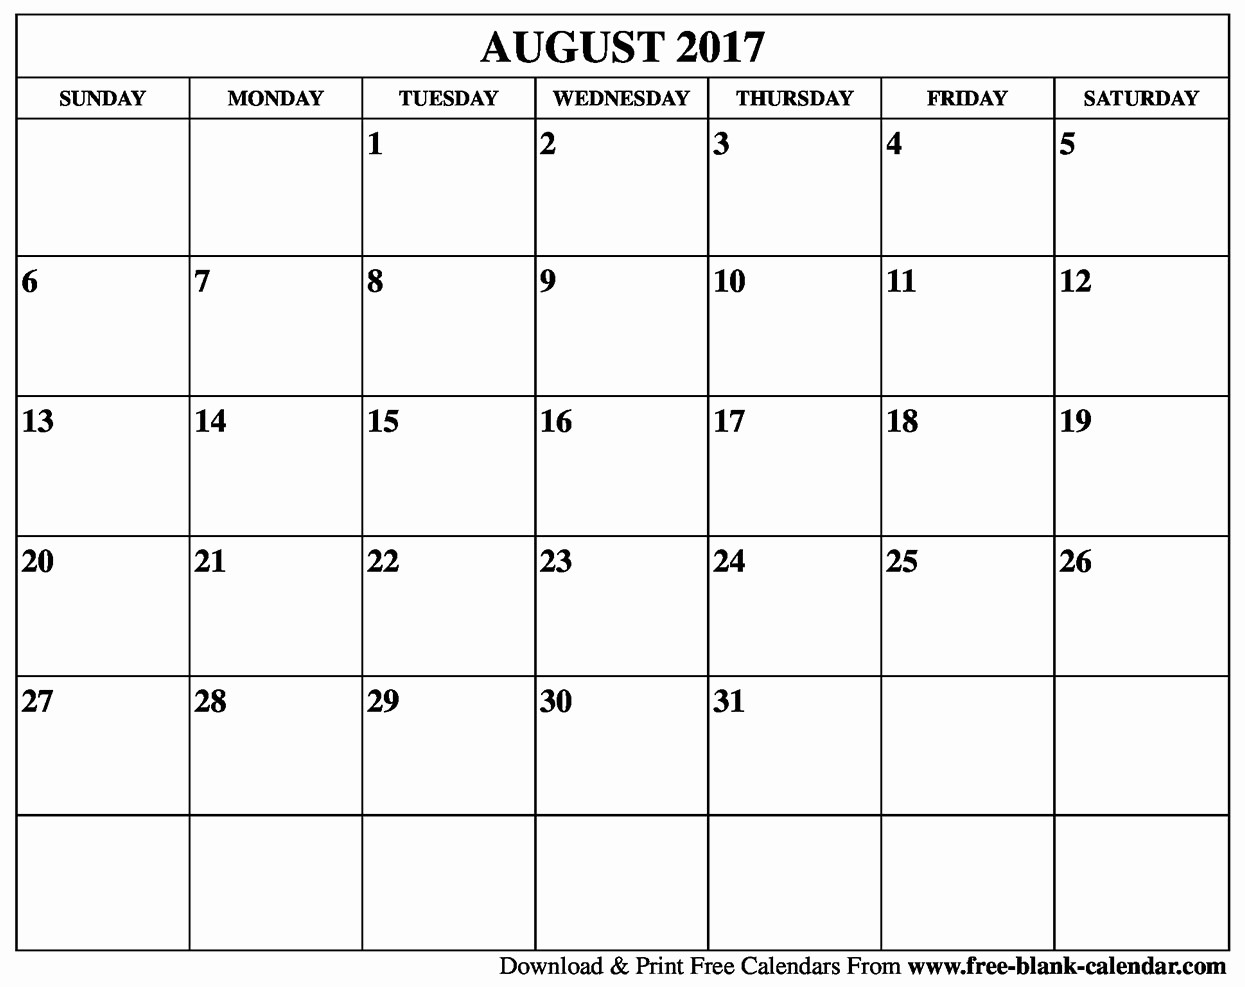 Free Blank Printable Calendar 2017 Luxury Blank August 2017 Calendar Printable